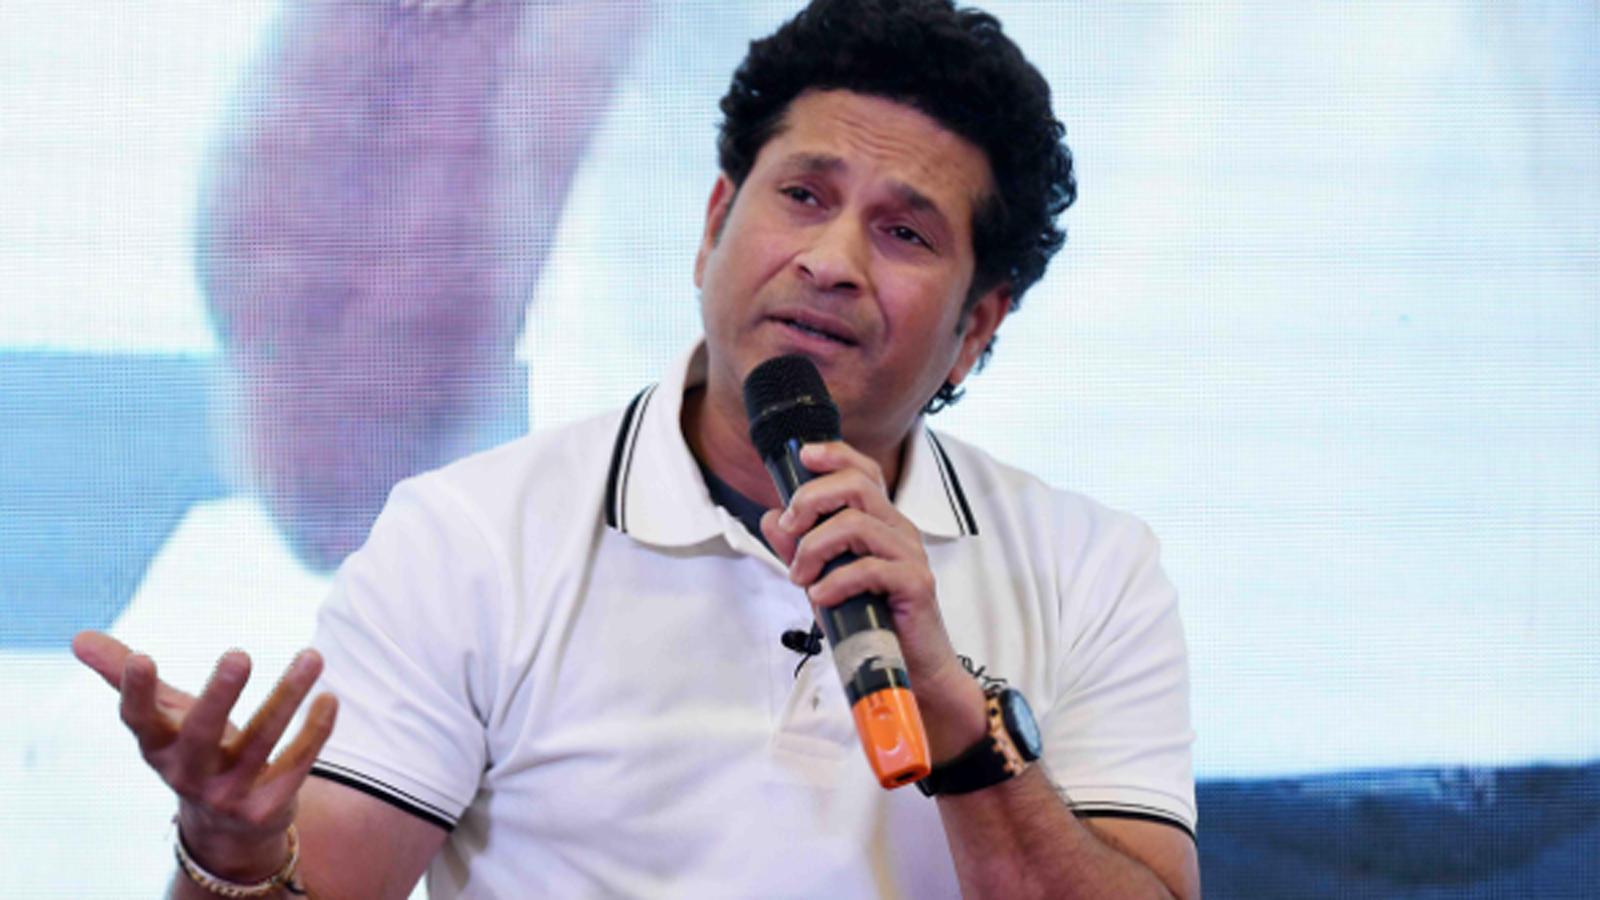 bcci-issues-notice-to-sachin-tendulkar-on-conflict-of-interest